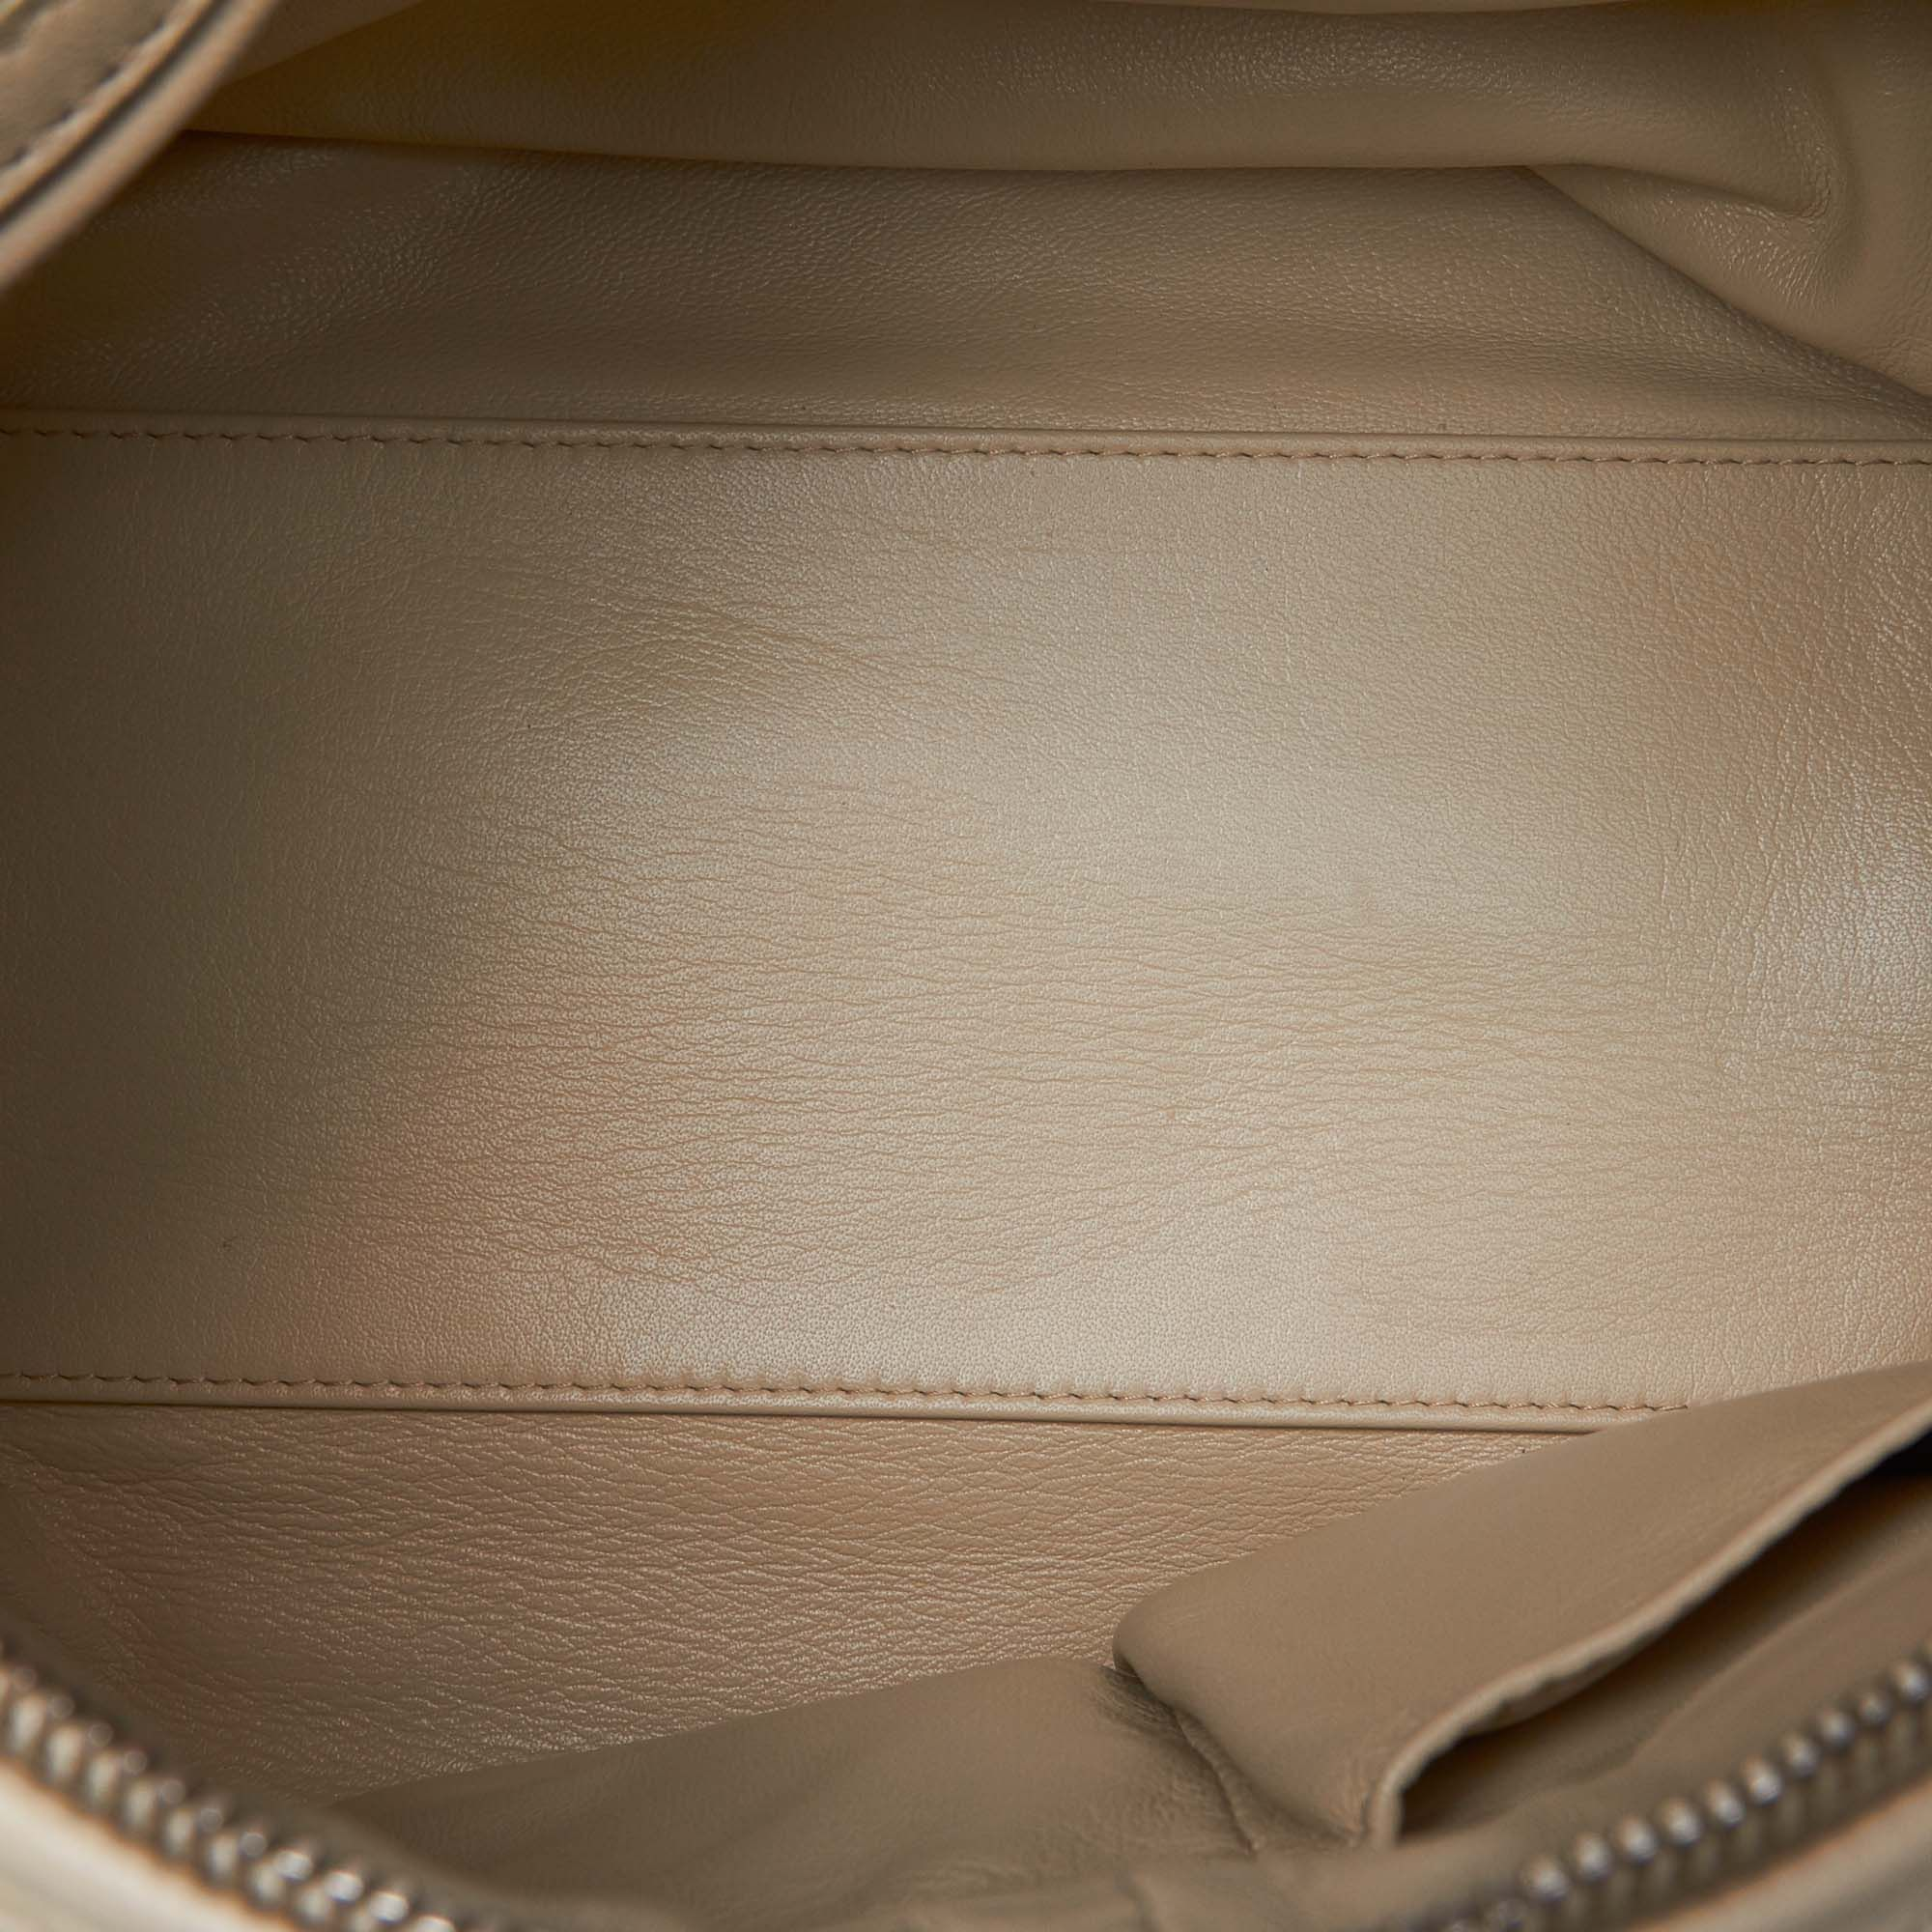 Vintage Dior Cannage Leather Crossbody Bag White